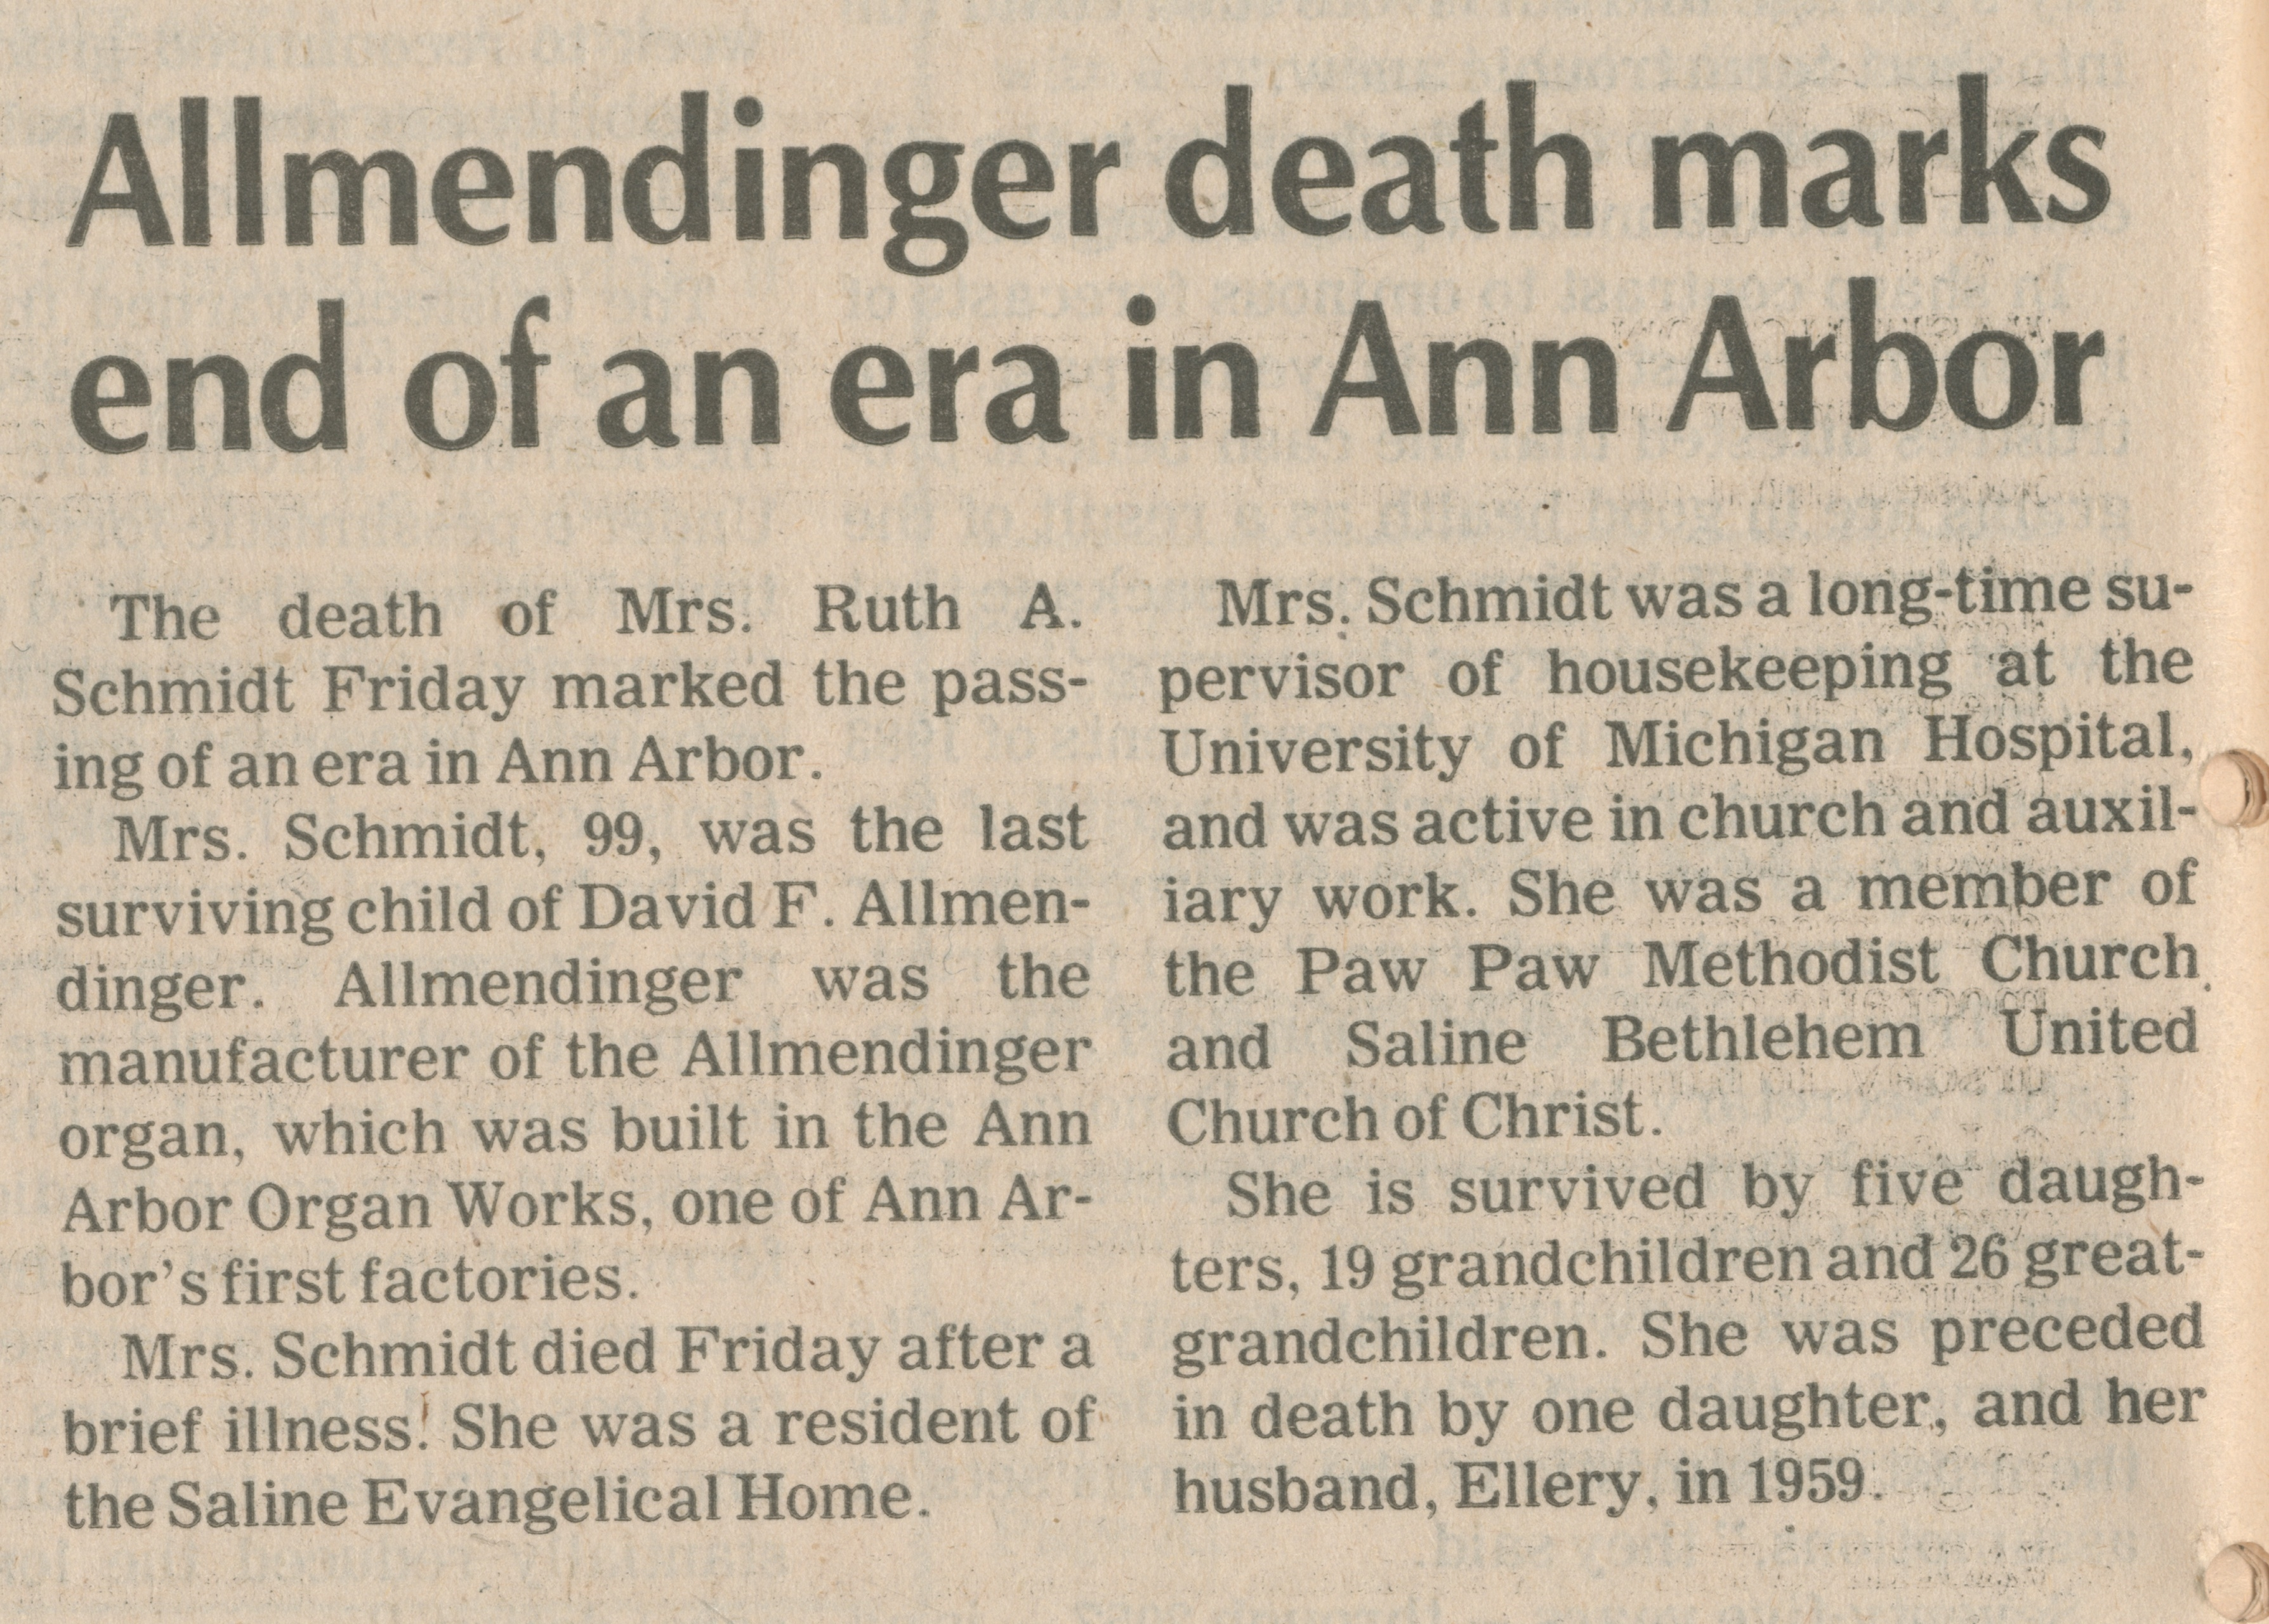 Allmendinger death marks end of an era in Ann Arbor image